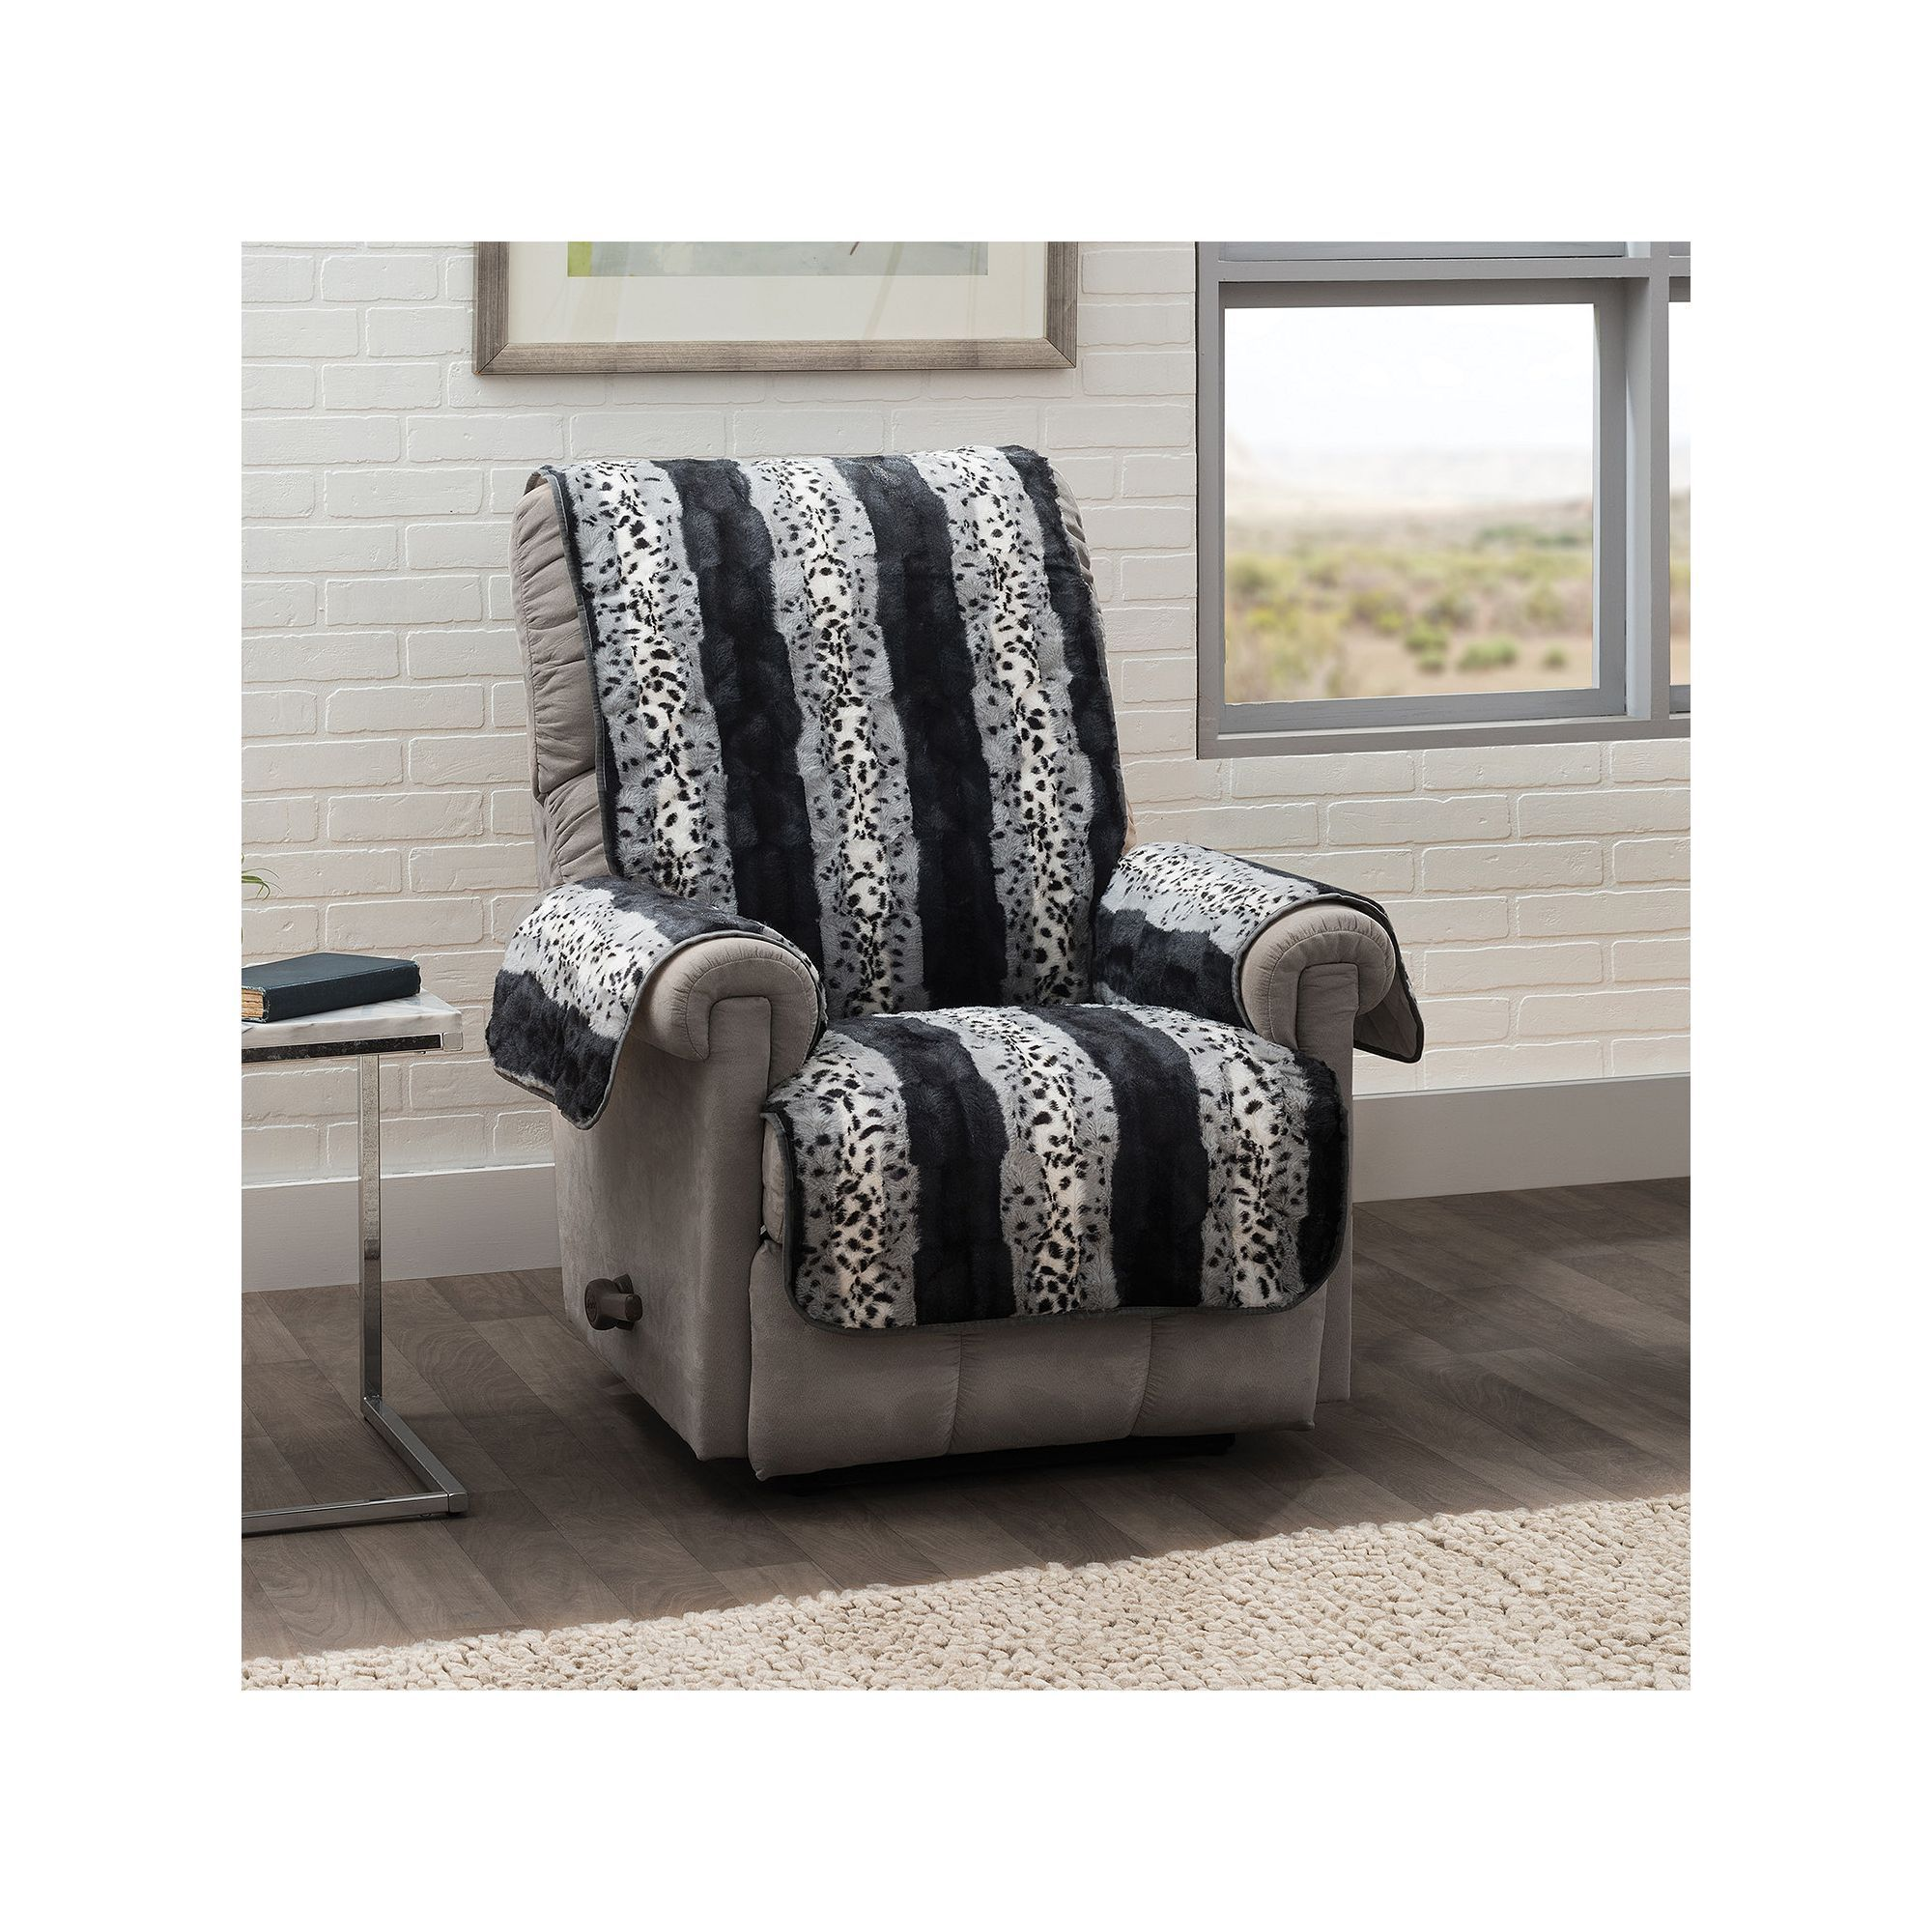 image slipcover home of relaxation wing recliners throughout slipcovers for redesign comfort chair recliner the and